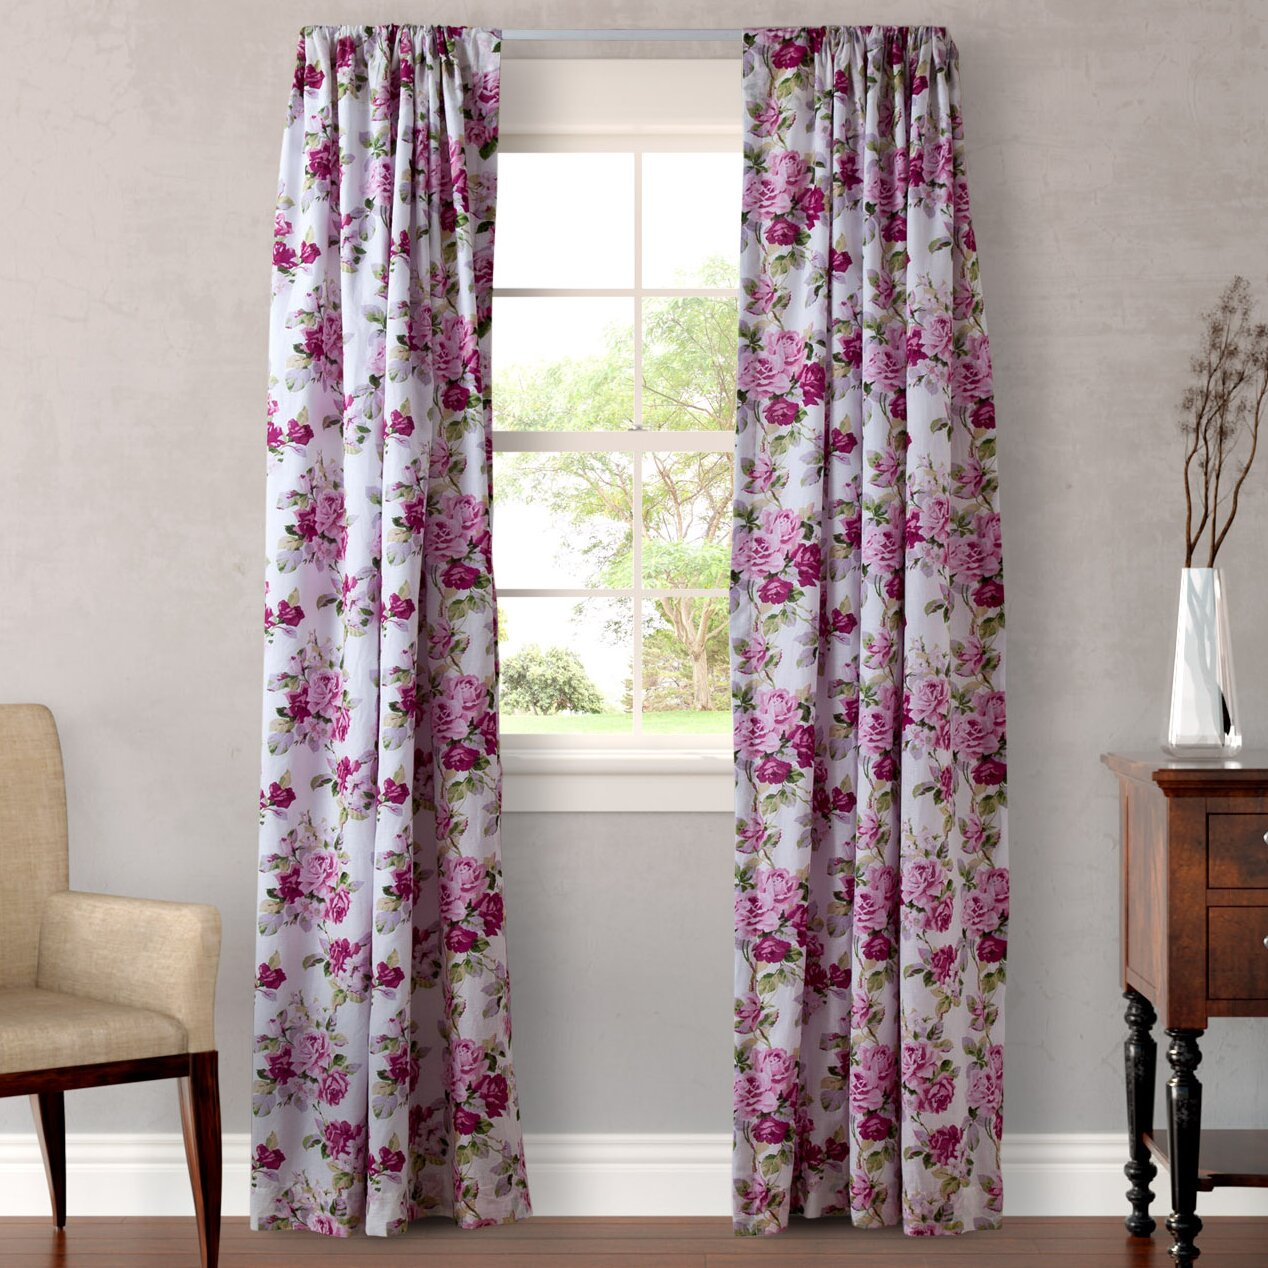 laura ashley home lidia curtain panel set reviews wayfair. Black Bedroom Furniture Sets. Home Design Ideas